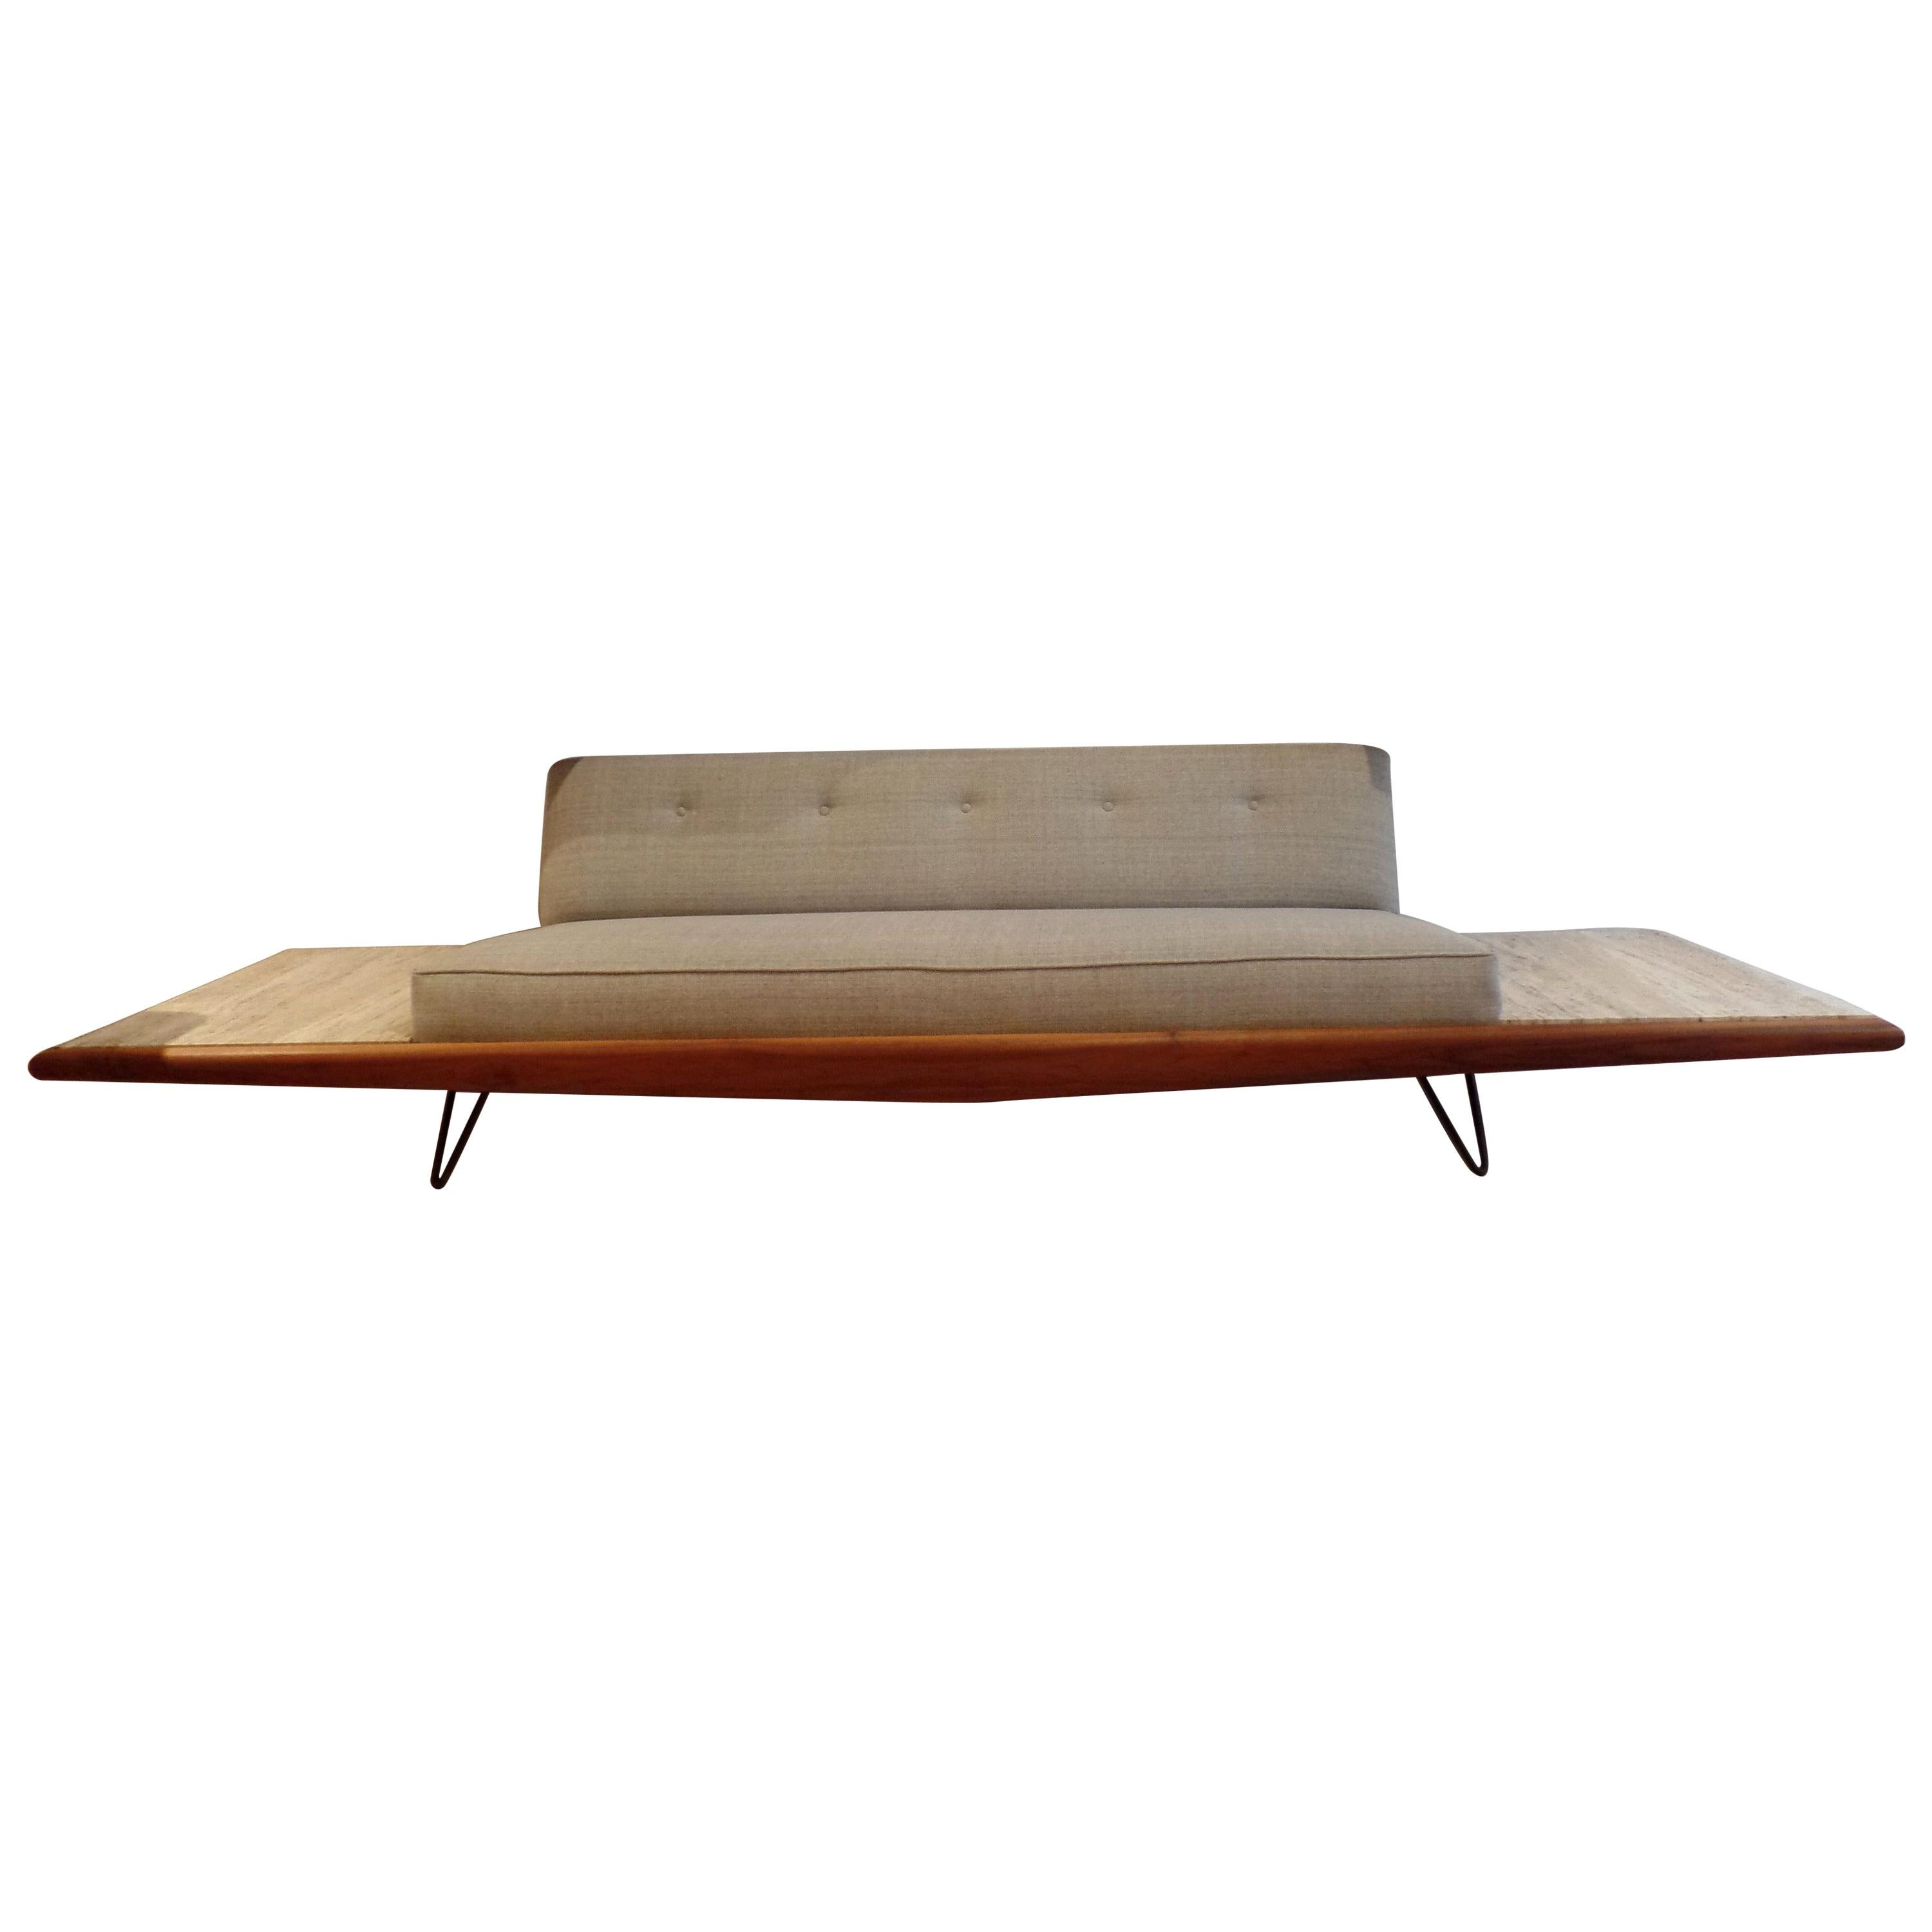 Rare Adrian Pearsall Sofa with End Tables Displayed at Habitat 67, Expo 67